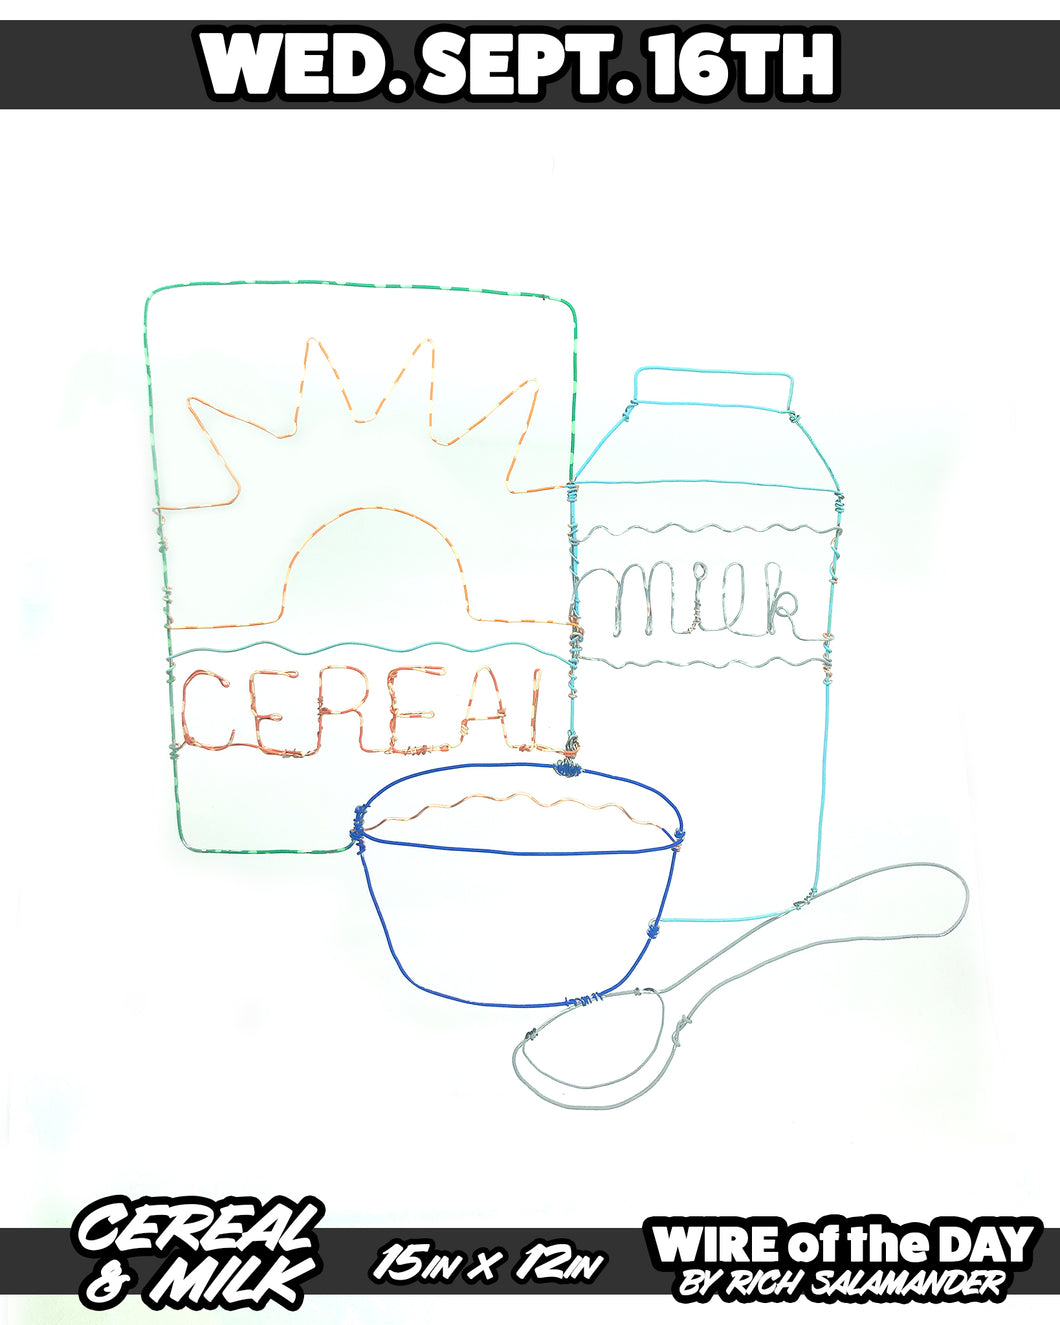 WIRE of the DAY CEREAL & MILK